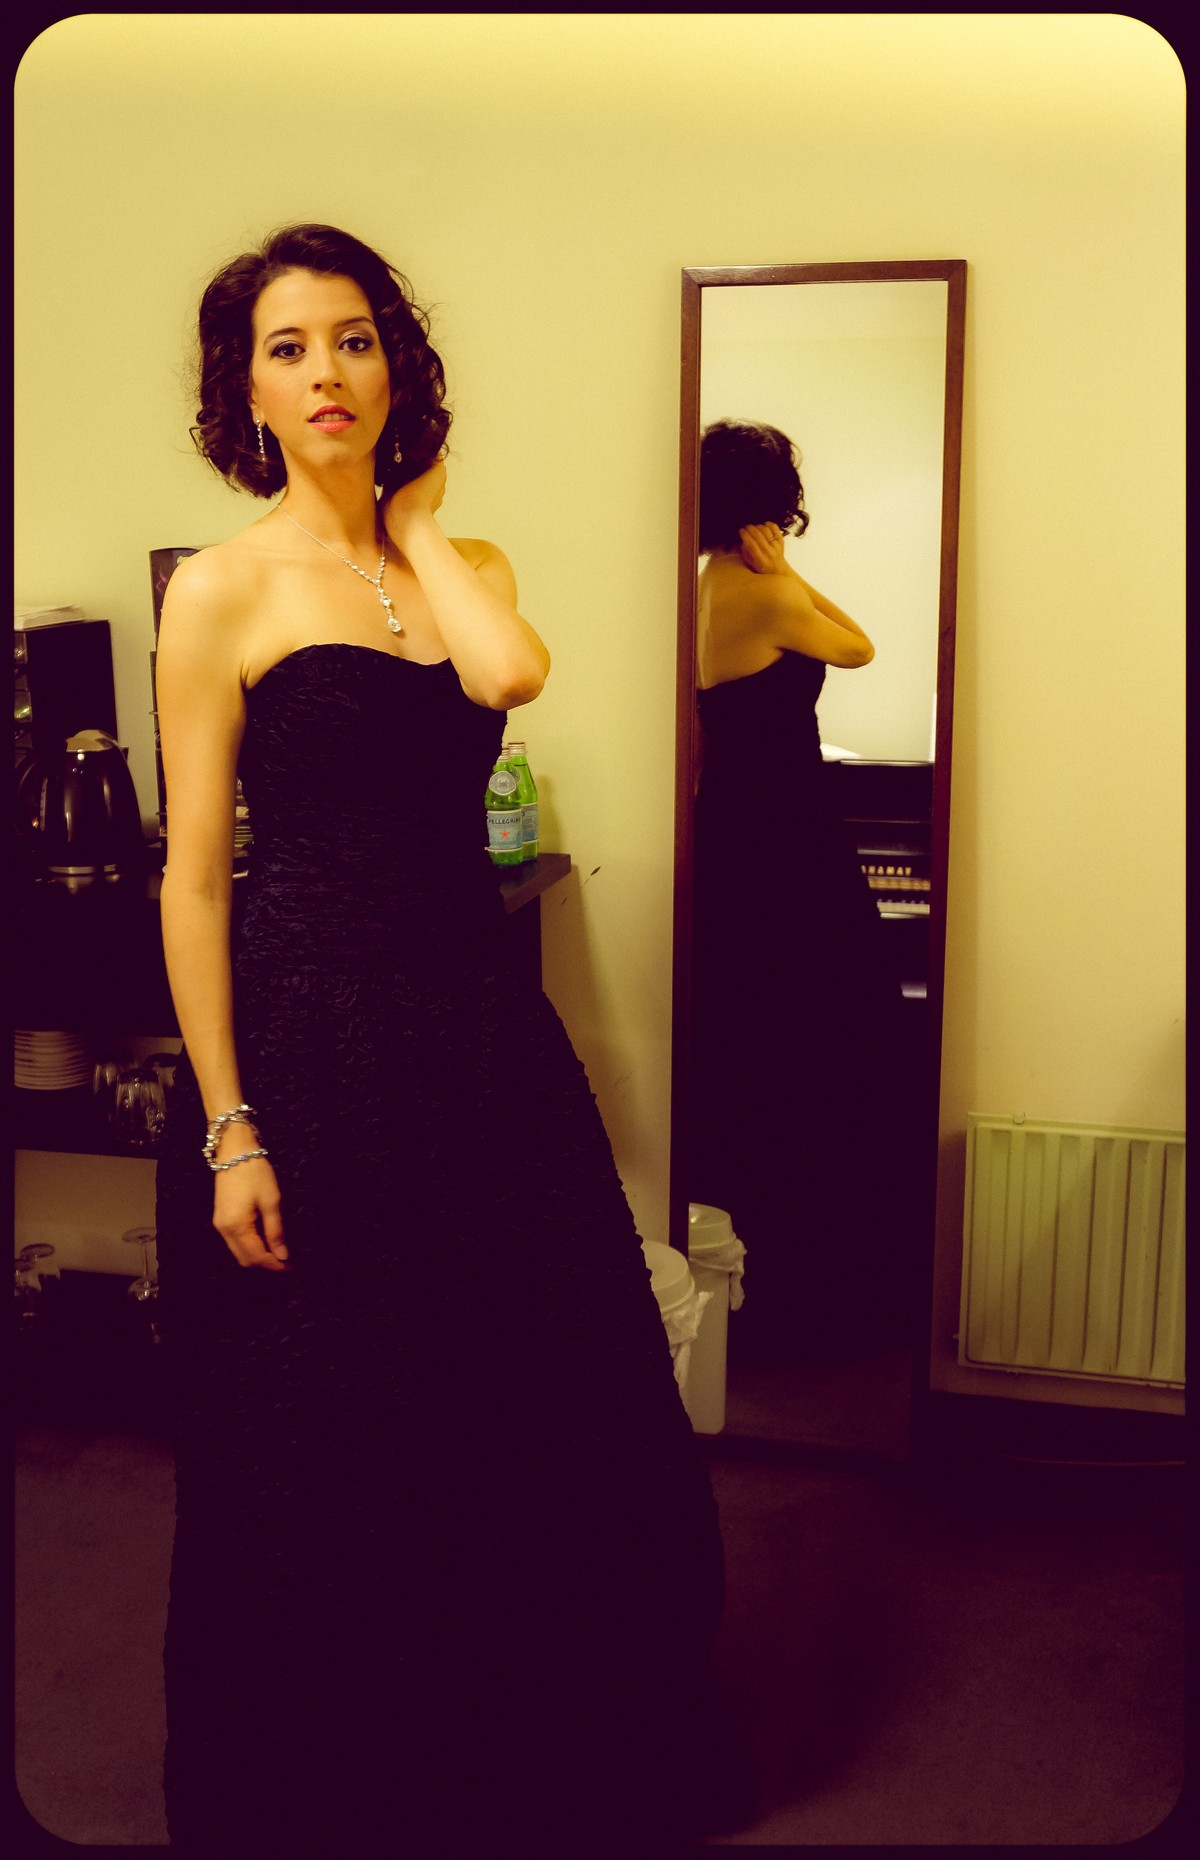 soprano backstage singer vocal opera Lisette Oropesa Amsterdam mirror reflection fashion